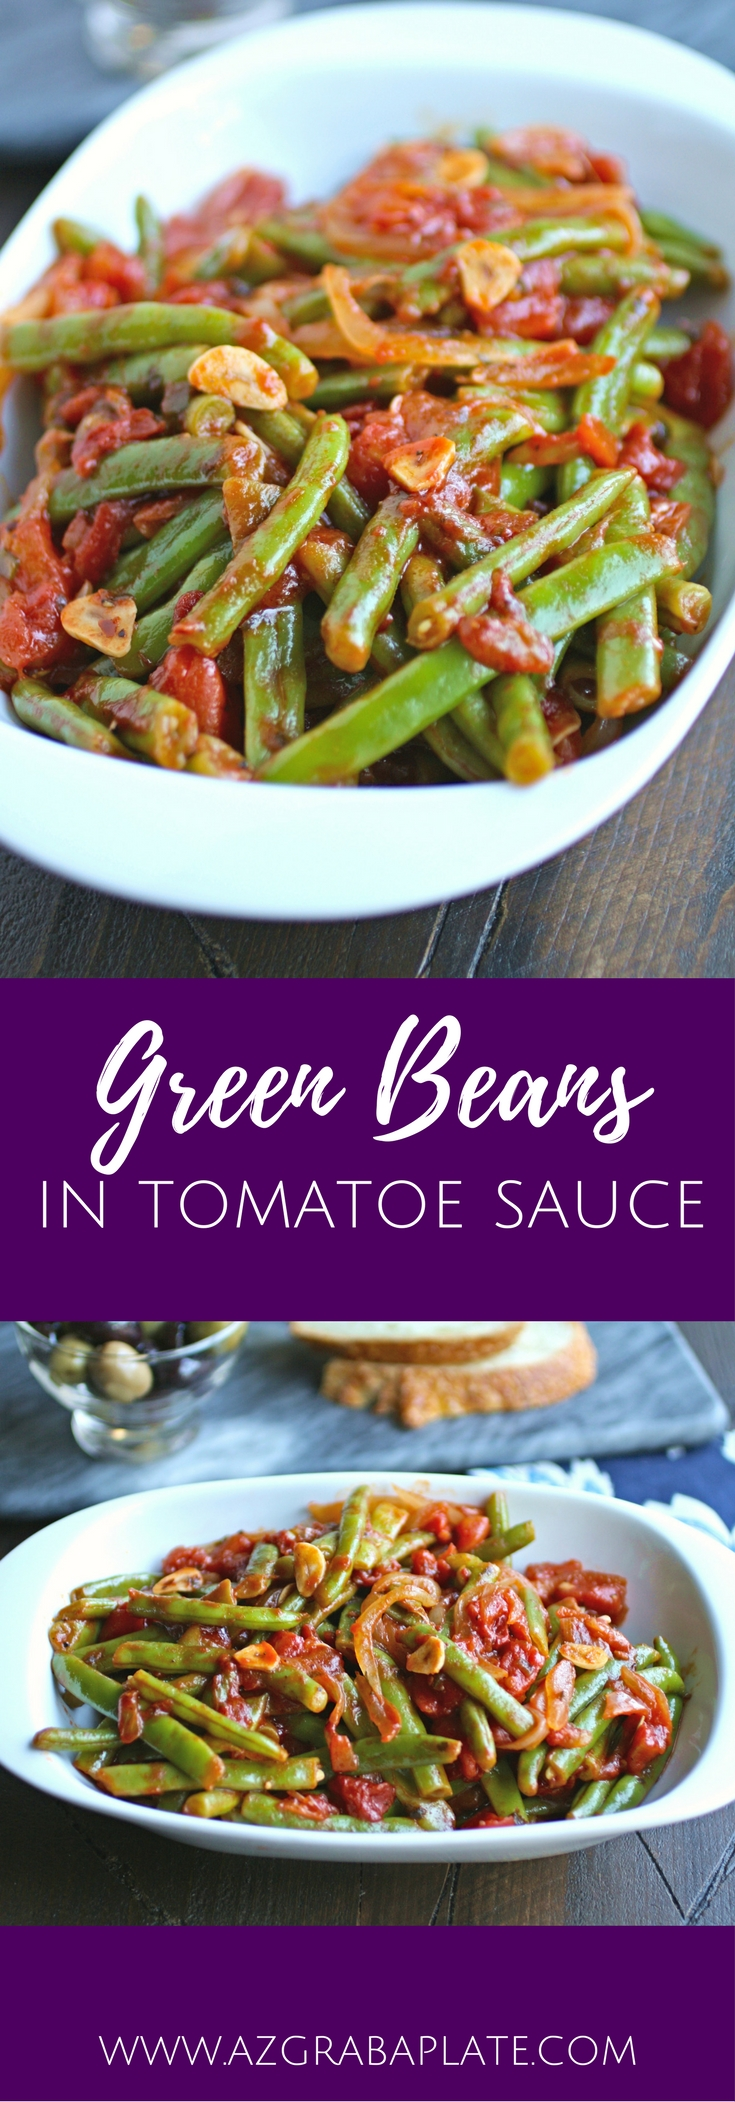 Green Beans in Tomato Sauce is a simple, straightforward, and delicious side dish. You'll love the fresh flavors and colors combined in this veggie dish.